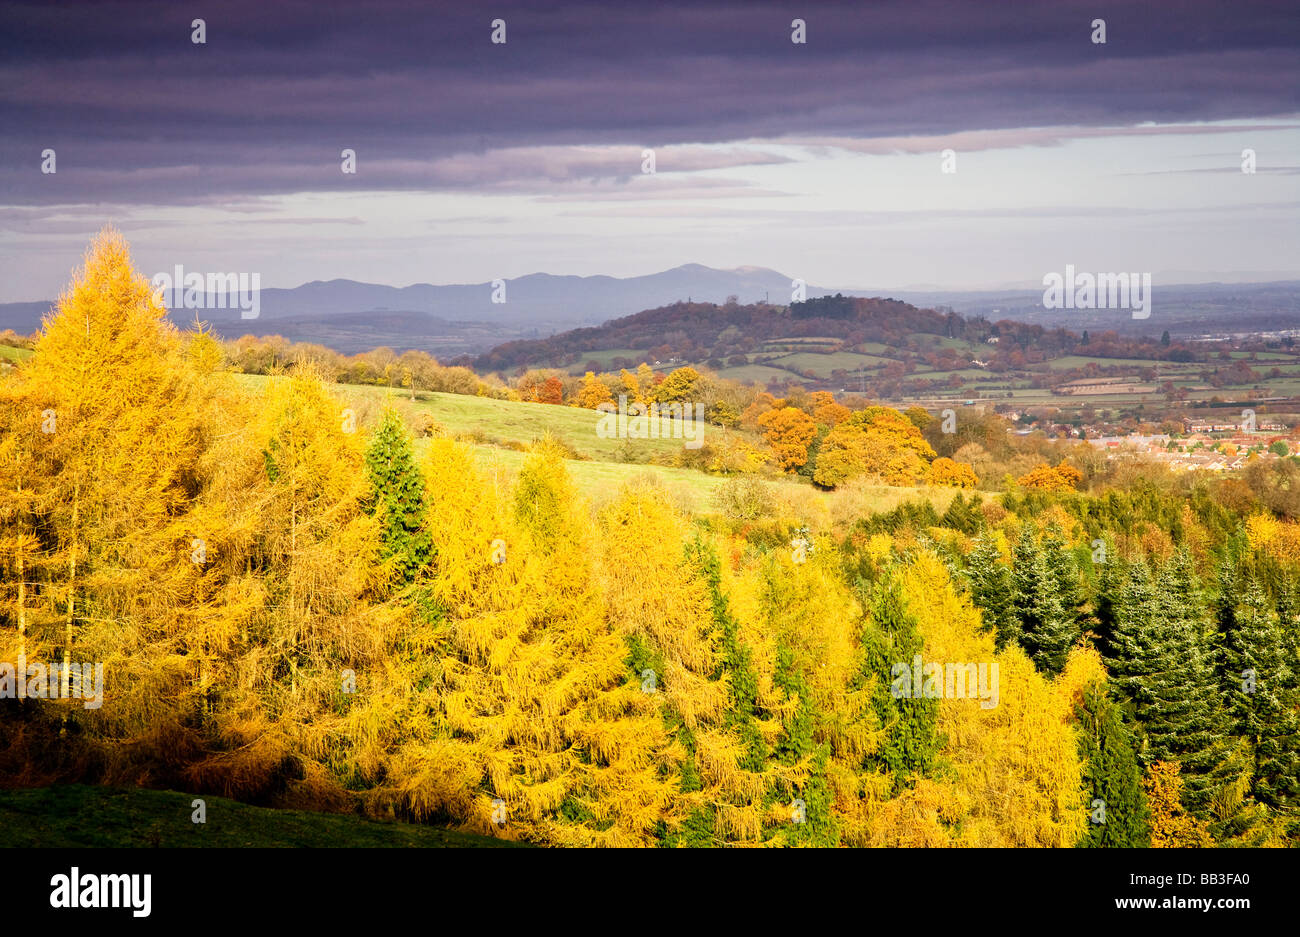 Dramatic stormy light on conifer forest and Malvern Hills from the Cotswold escarpment, Gloucestershire, England, - Stock Image